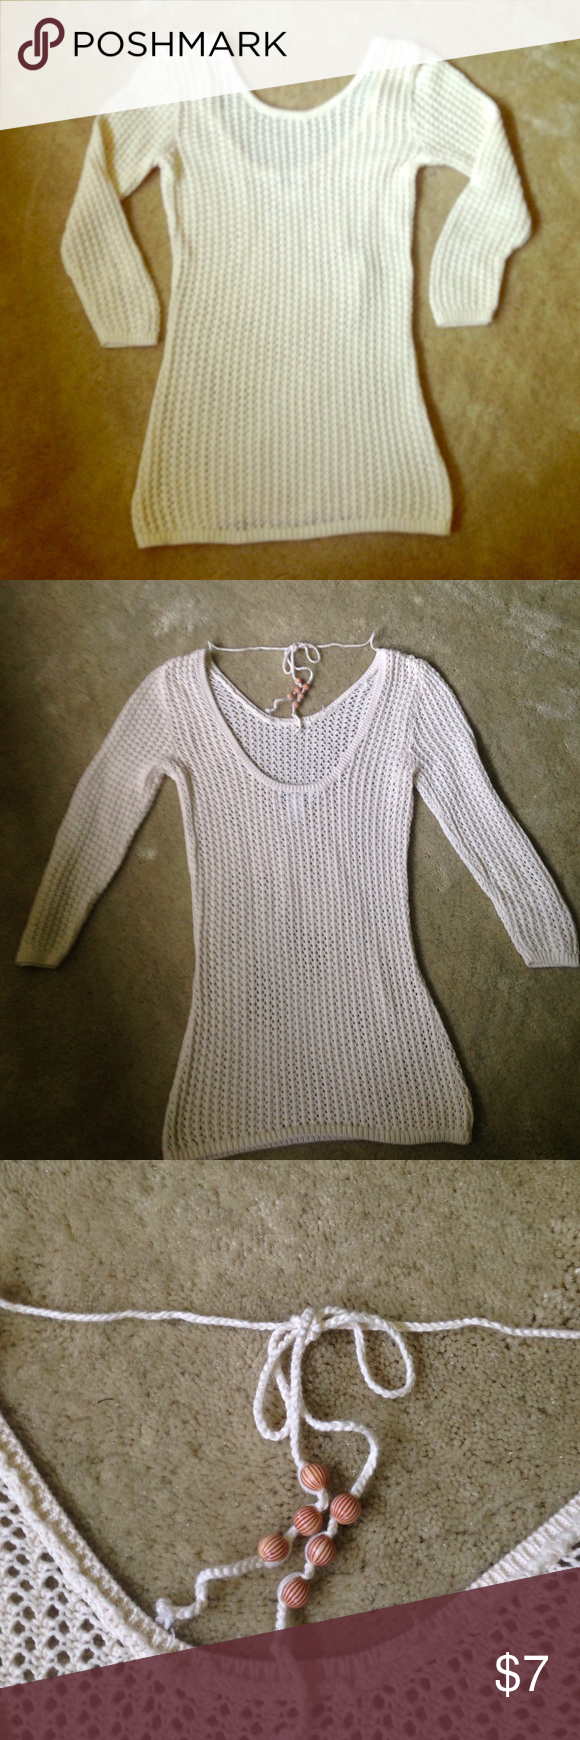 Cream sweater Cream colored sweater by Old Navy is the perfect piece for a breezy, relaxed beach look. Adorable with a denim skirt or white pants in the summer months Old Navy Sweaters